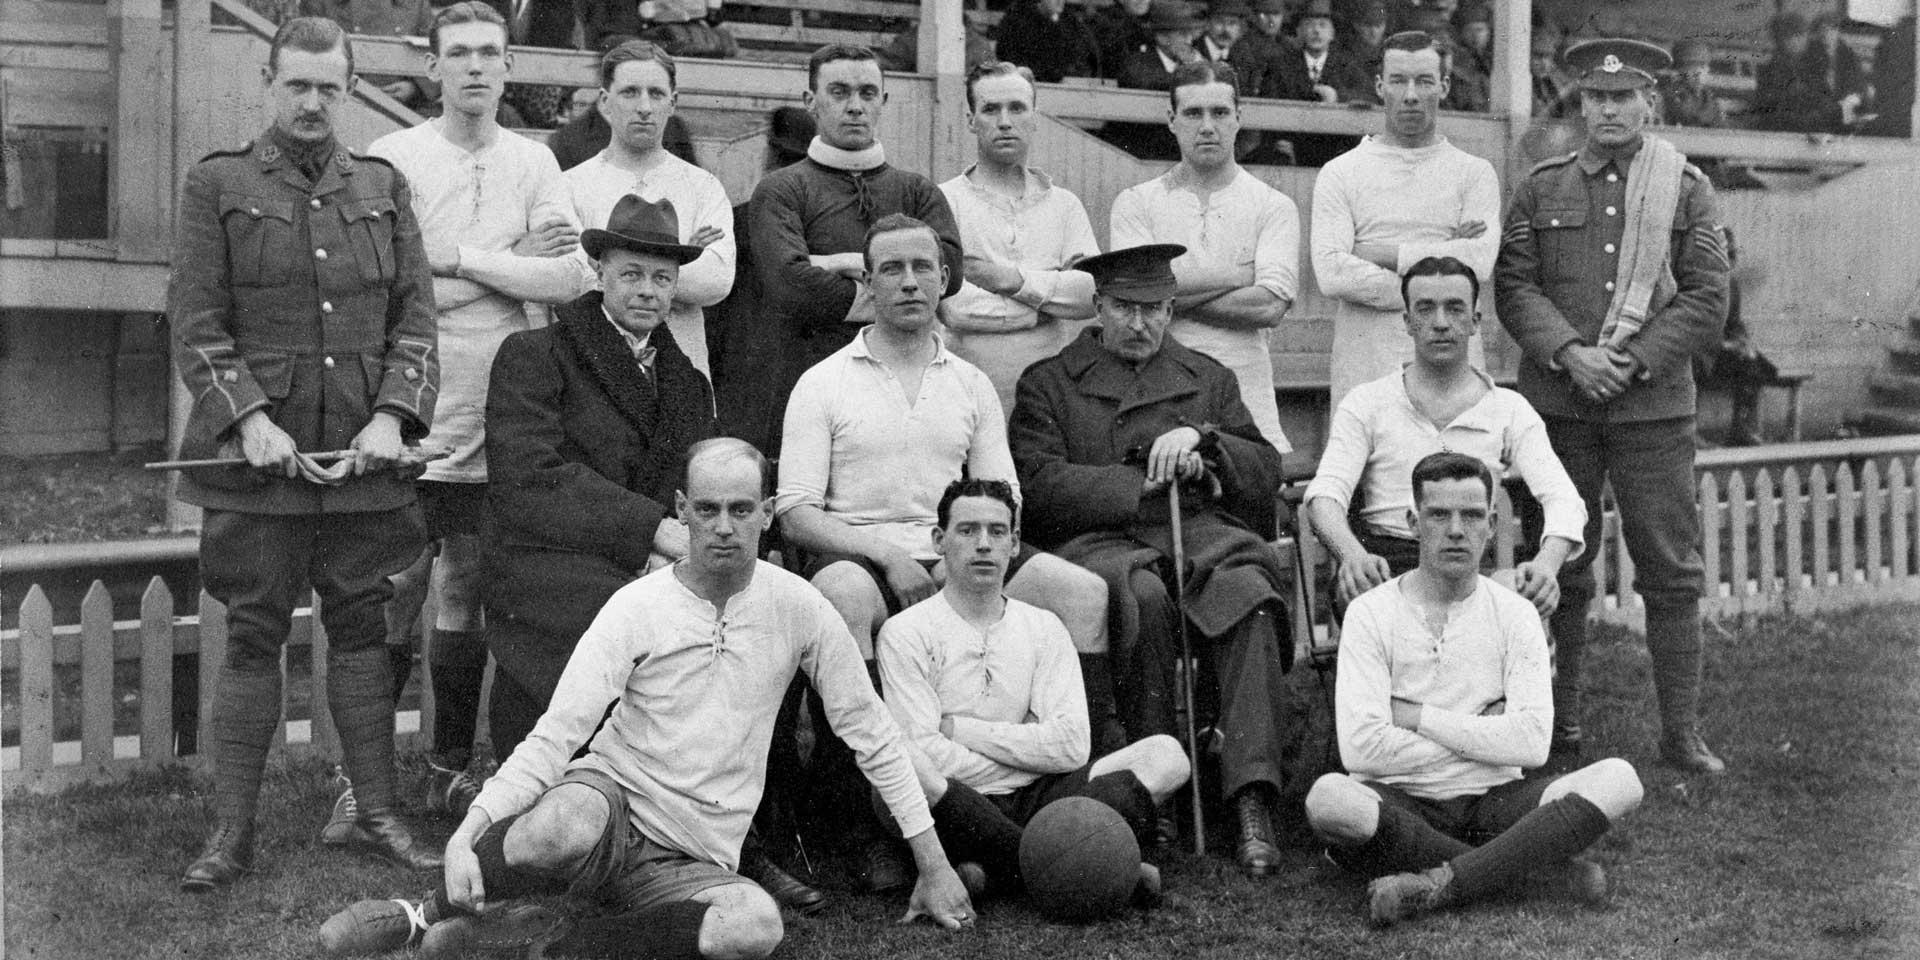 Footballers of 17th (S) Battalion, The Duke of Cambridge's Own (Middlesex Regiment), 1915